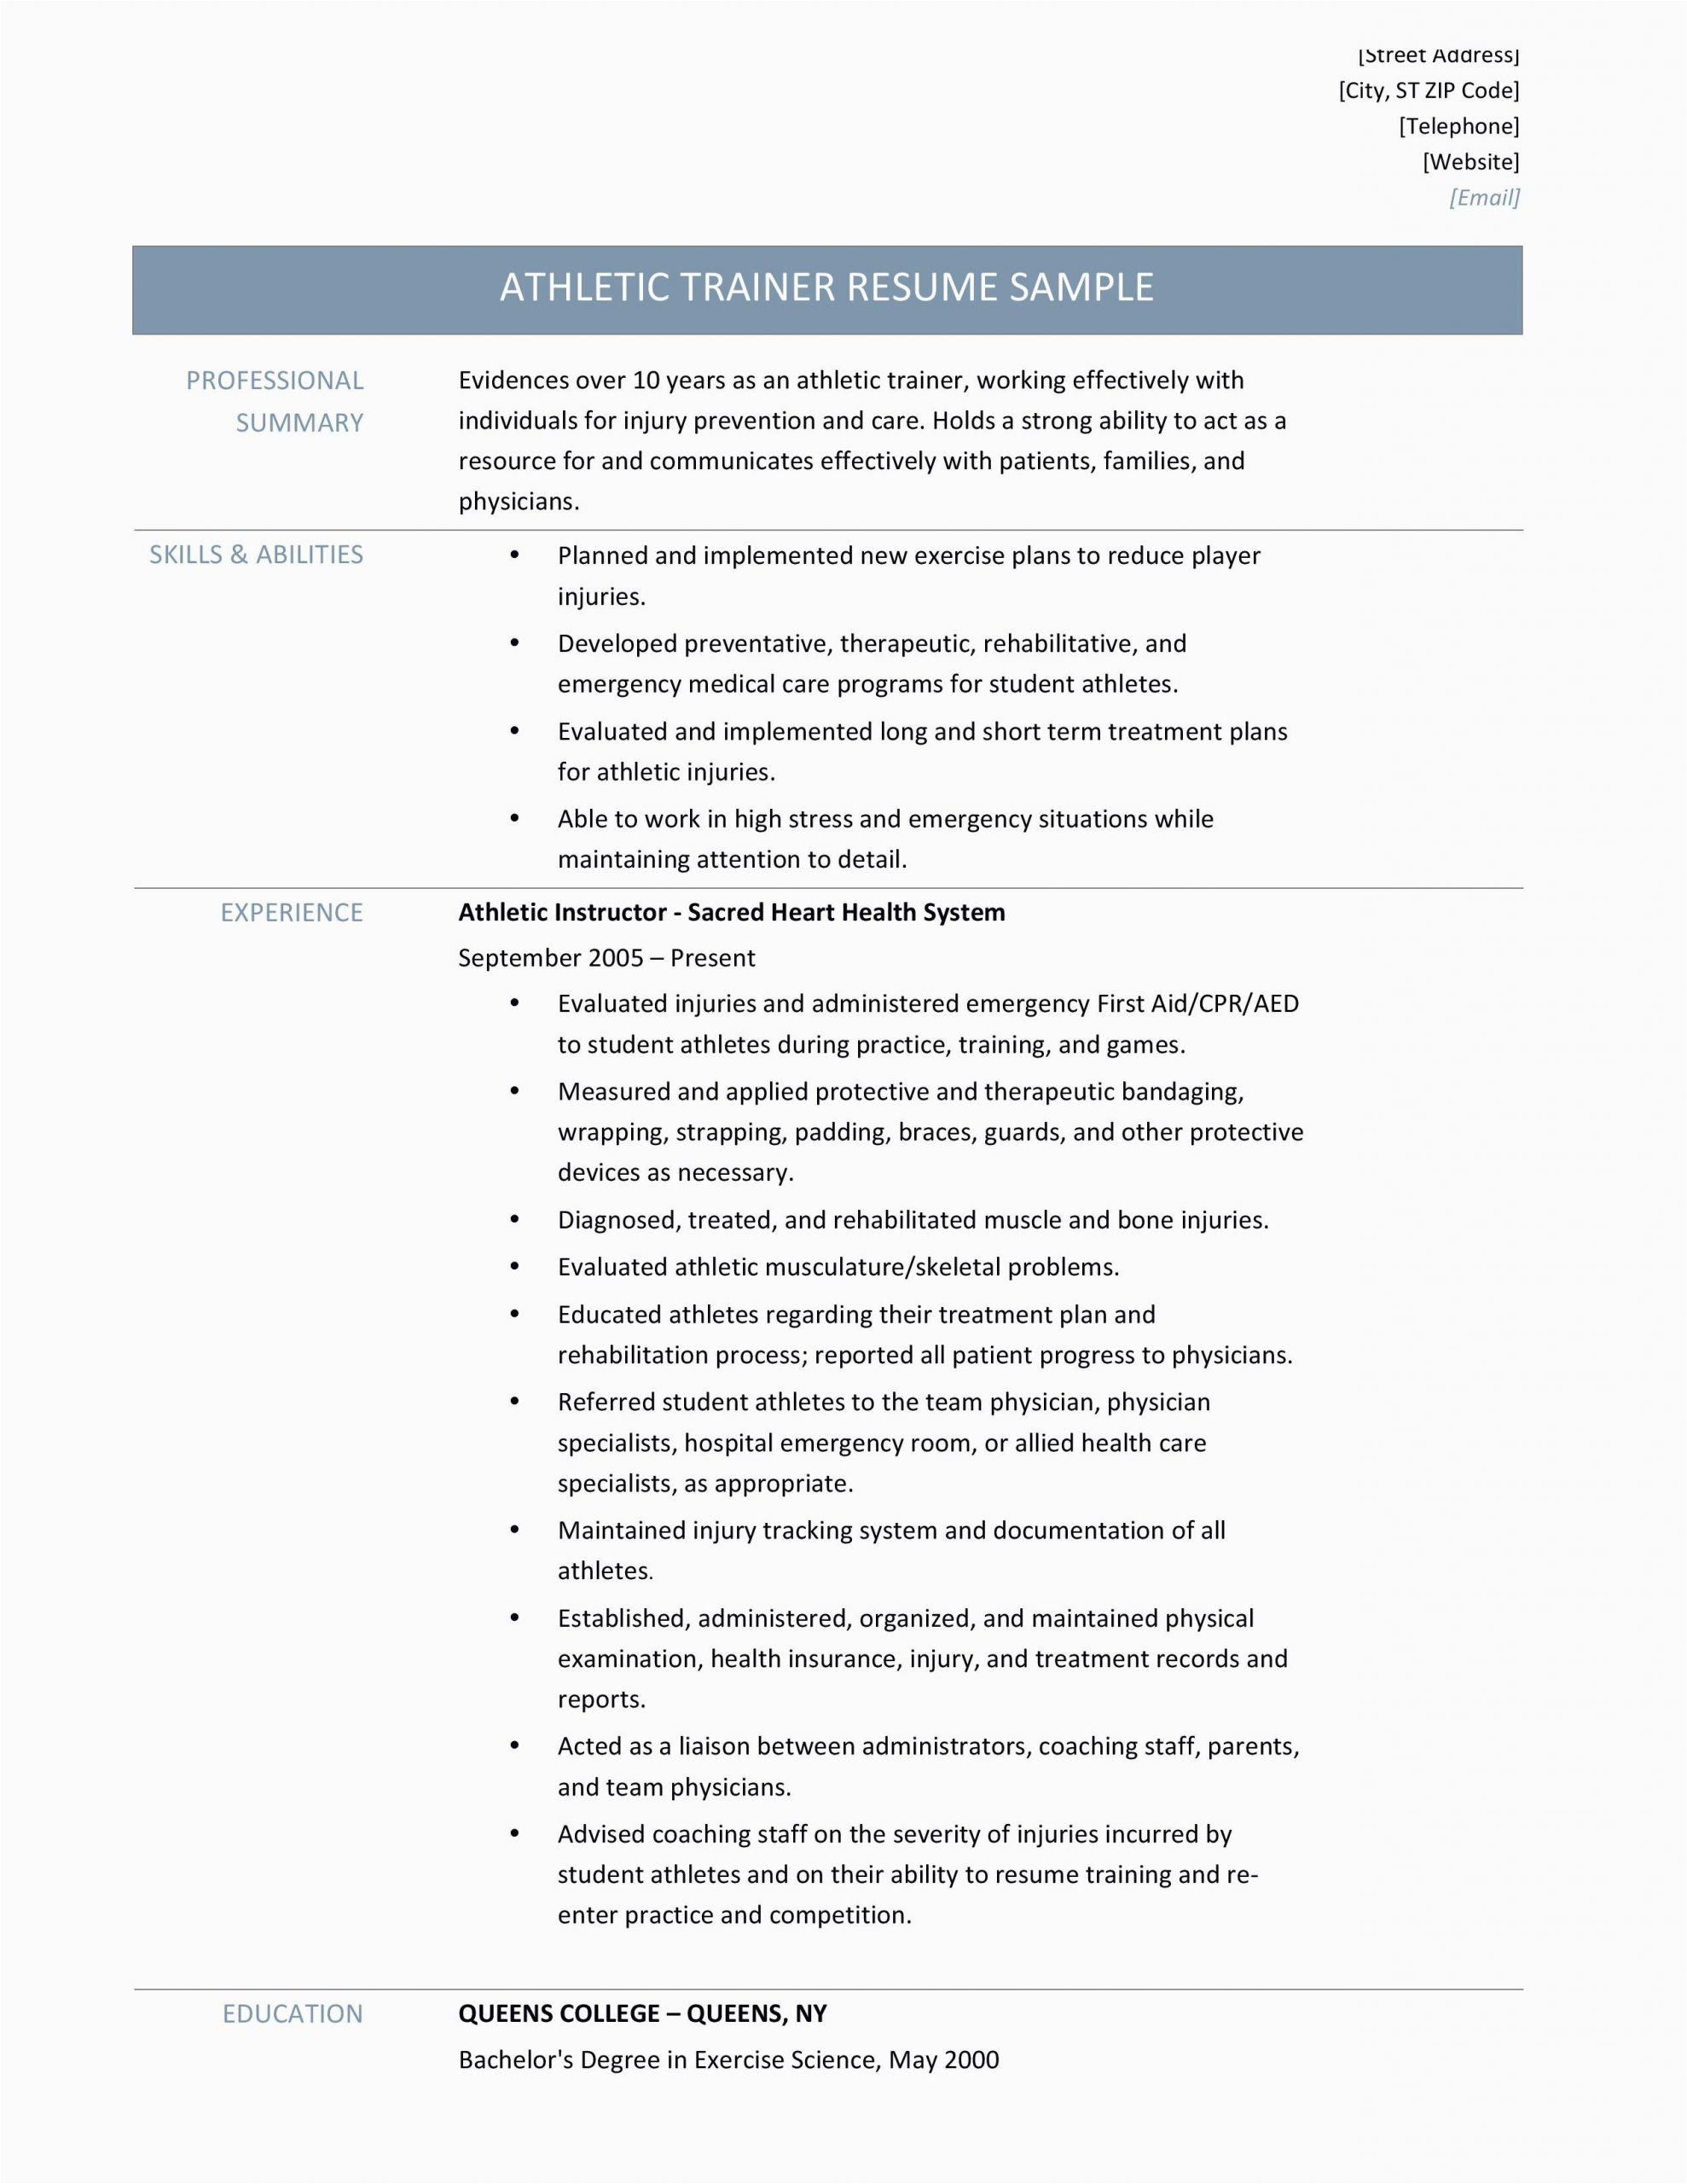 Sample Resume for athletic Trainer Position athletic Trainer Resume Samples Tips and Templates